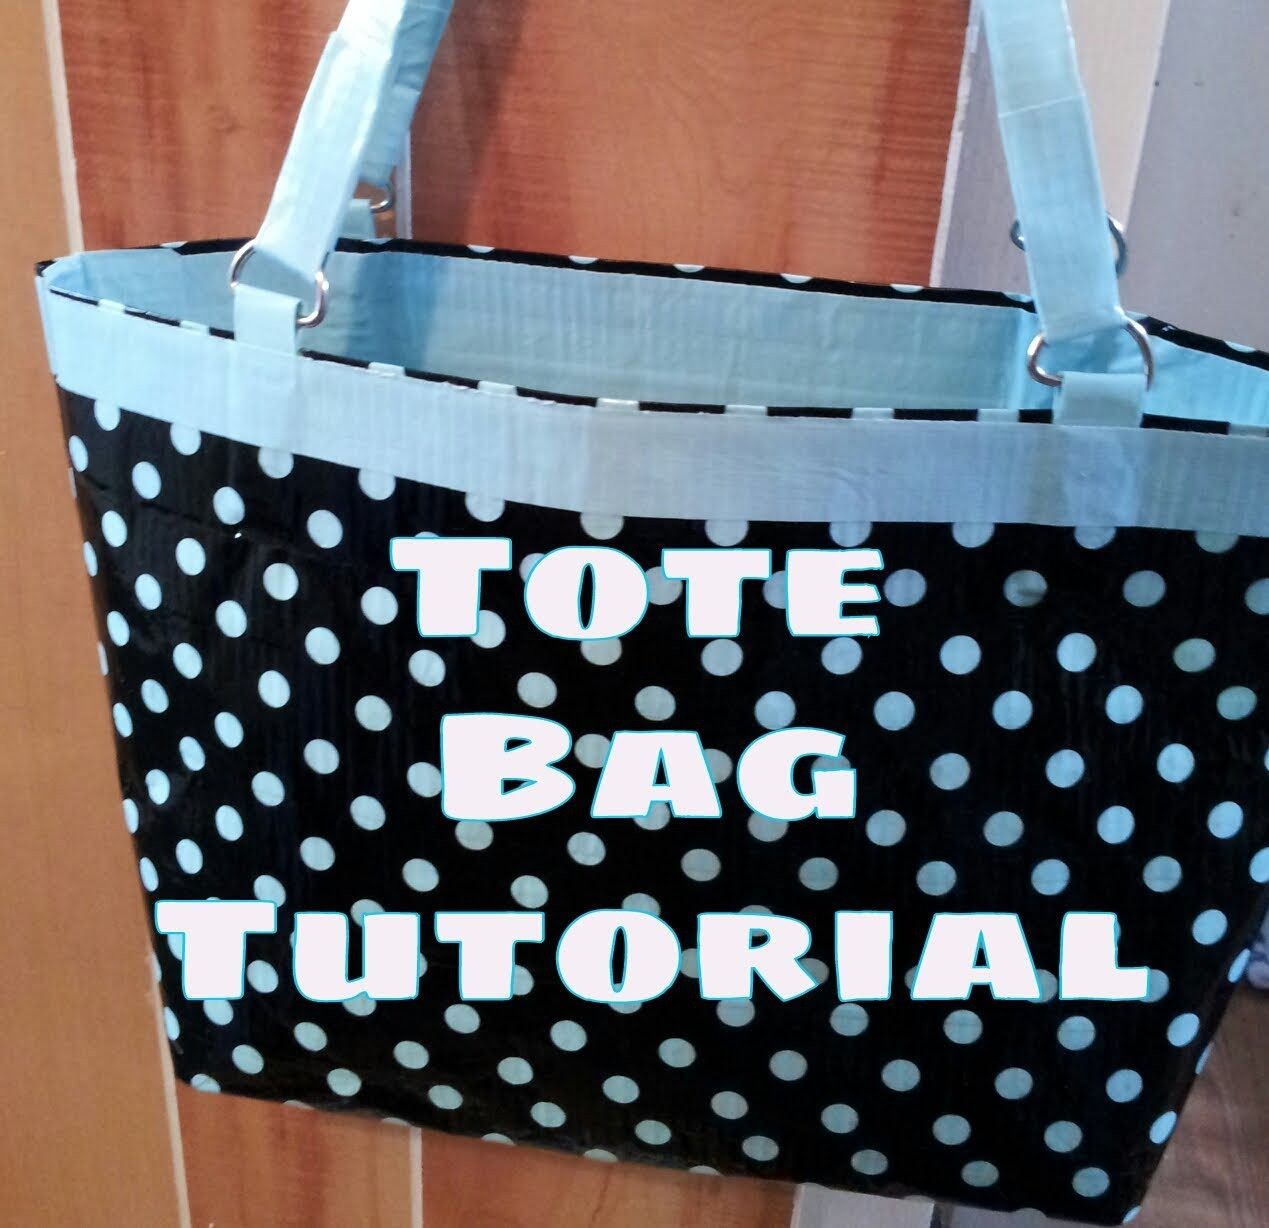 (DIY) Duct Tape Tote Bag Purse Tutorial!!! ( NO SEW)